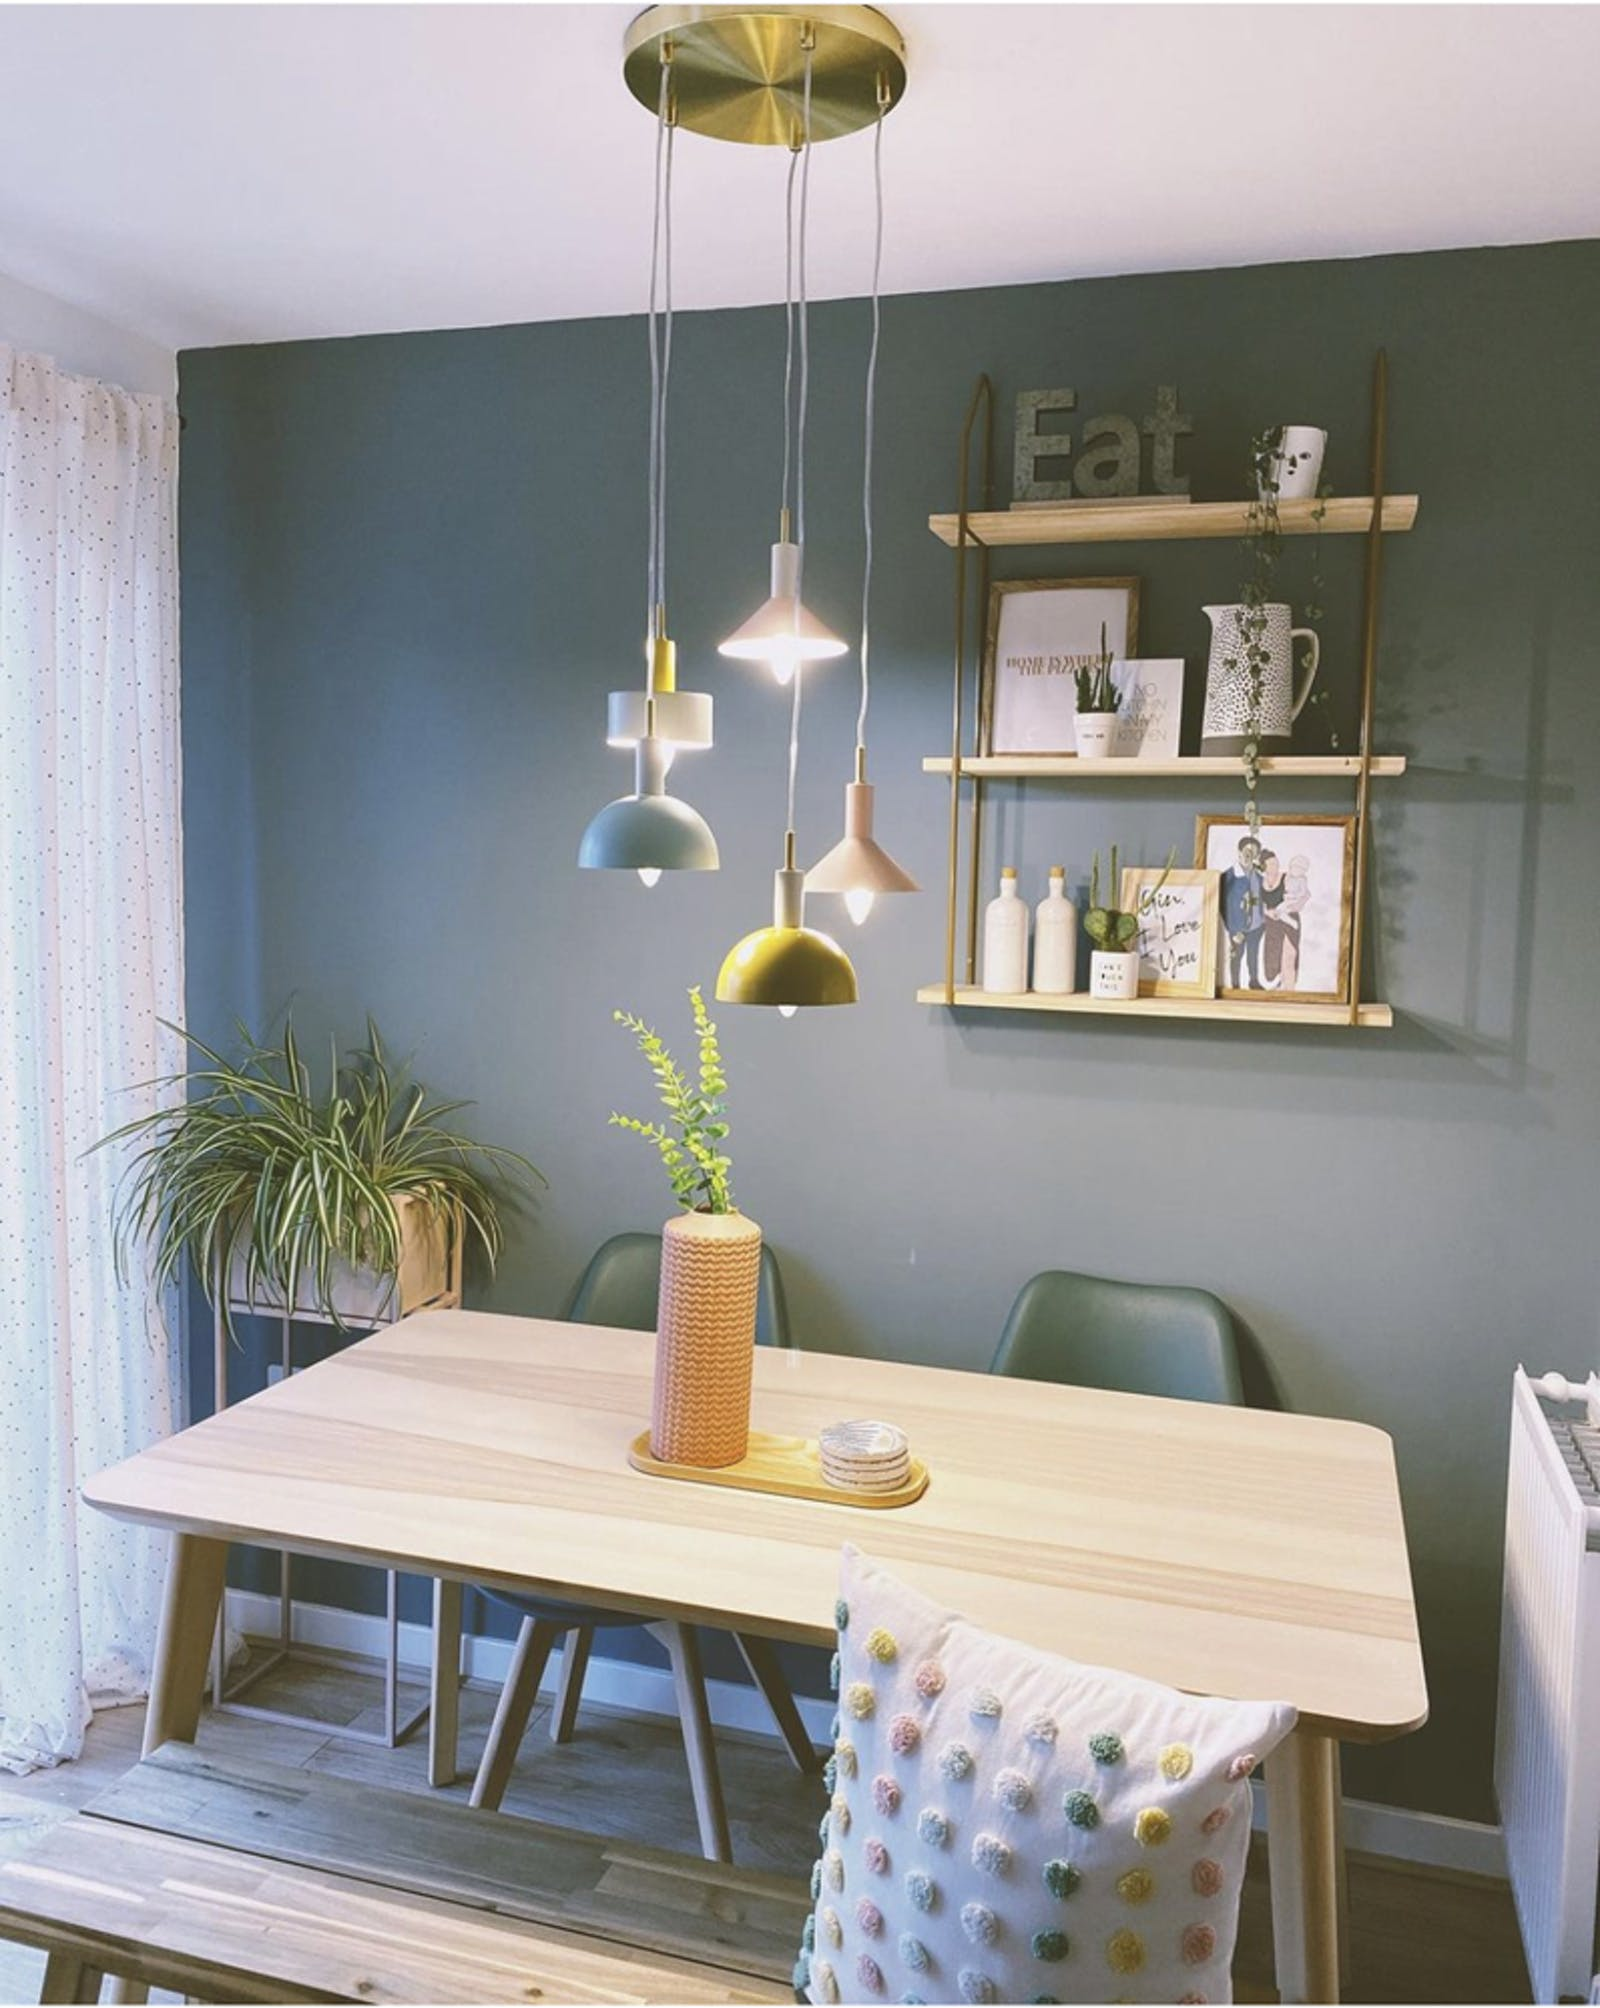 Dining room painted in a Teal shade